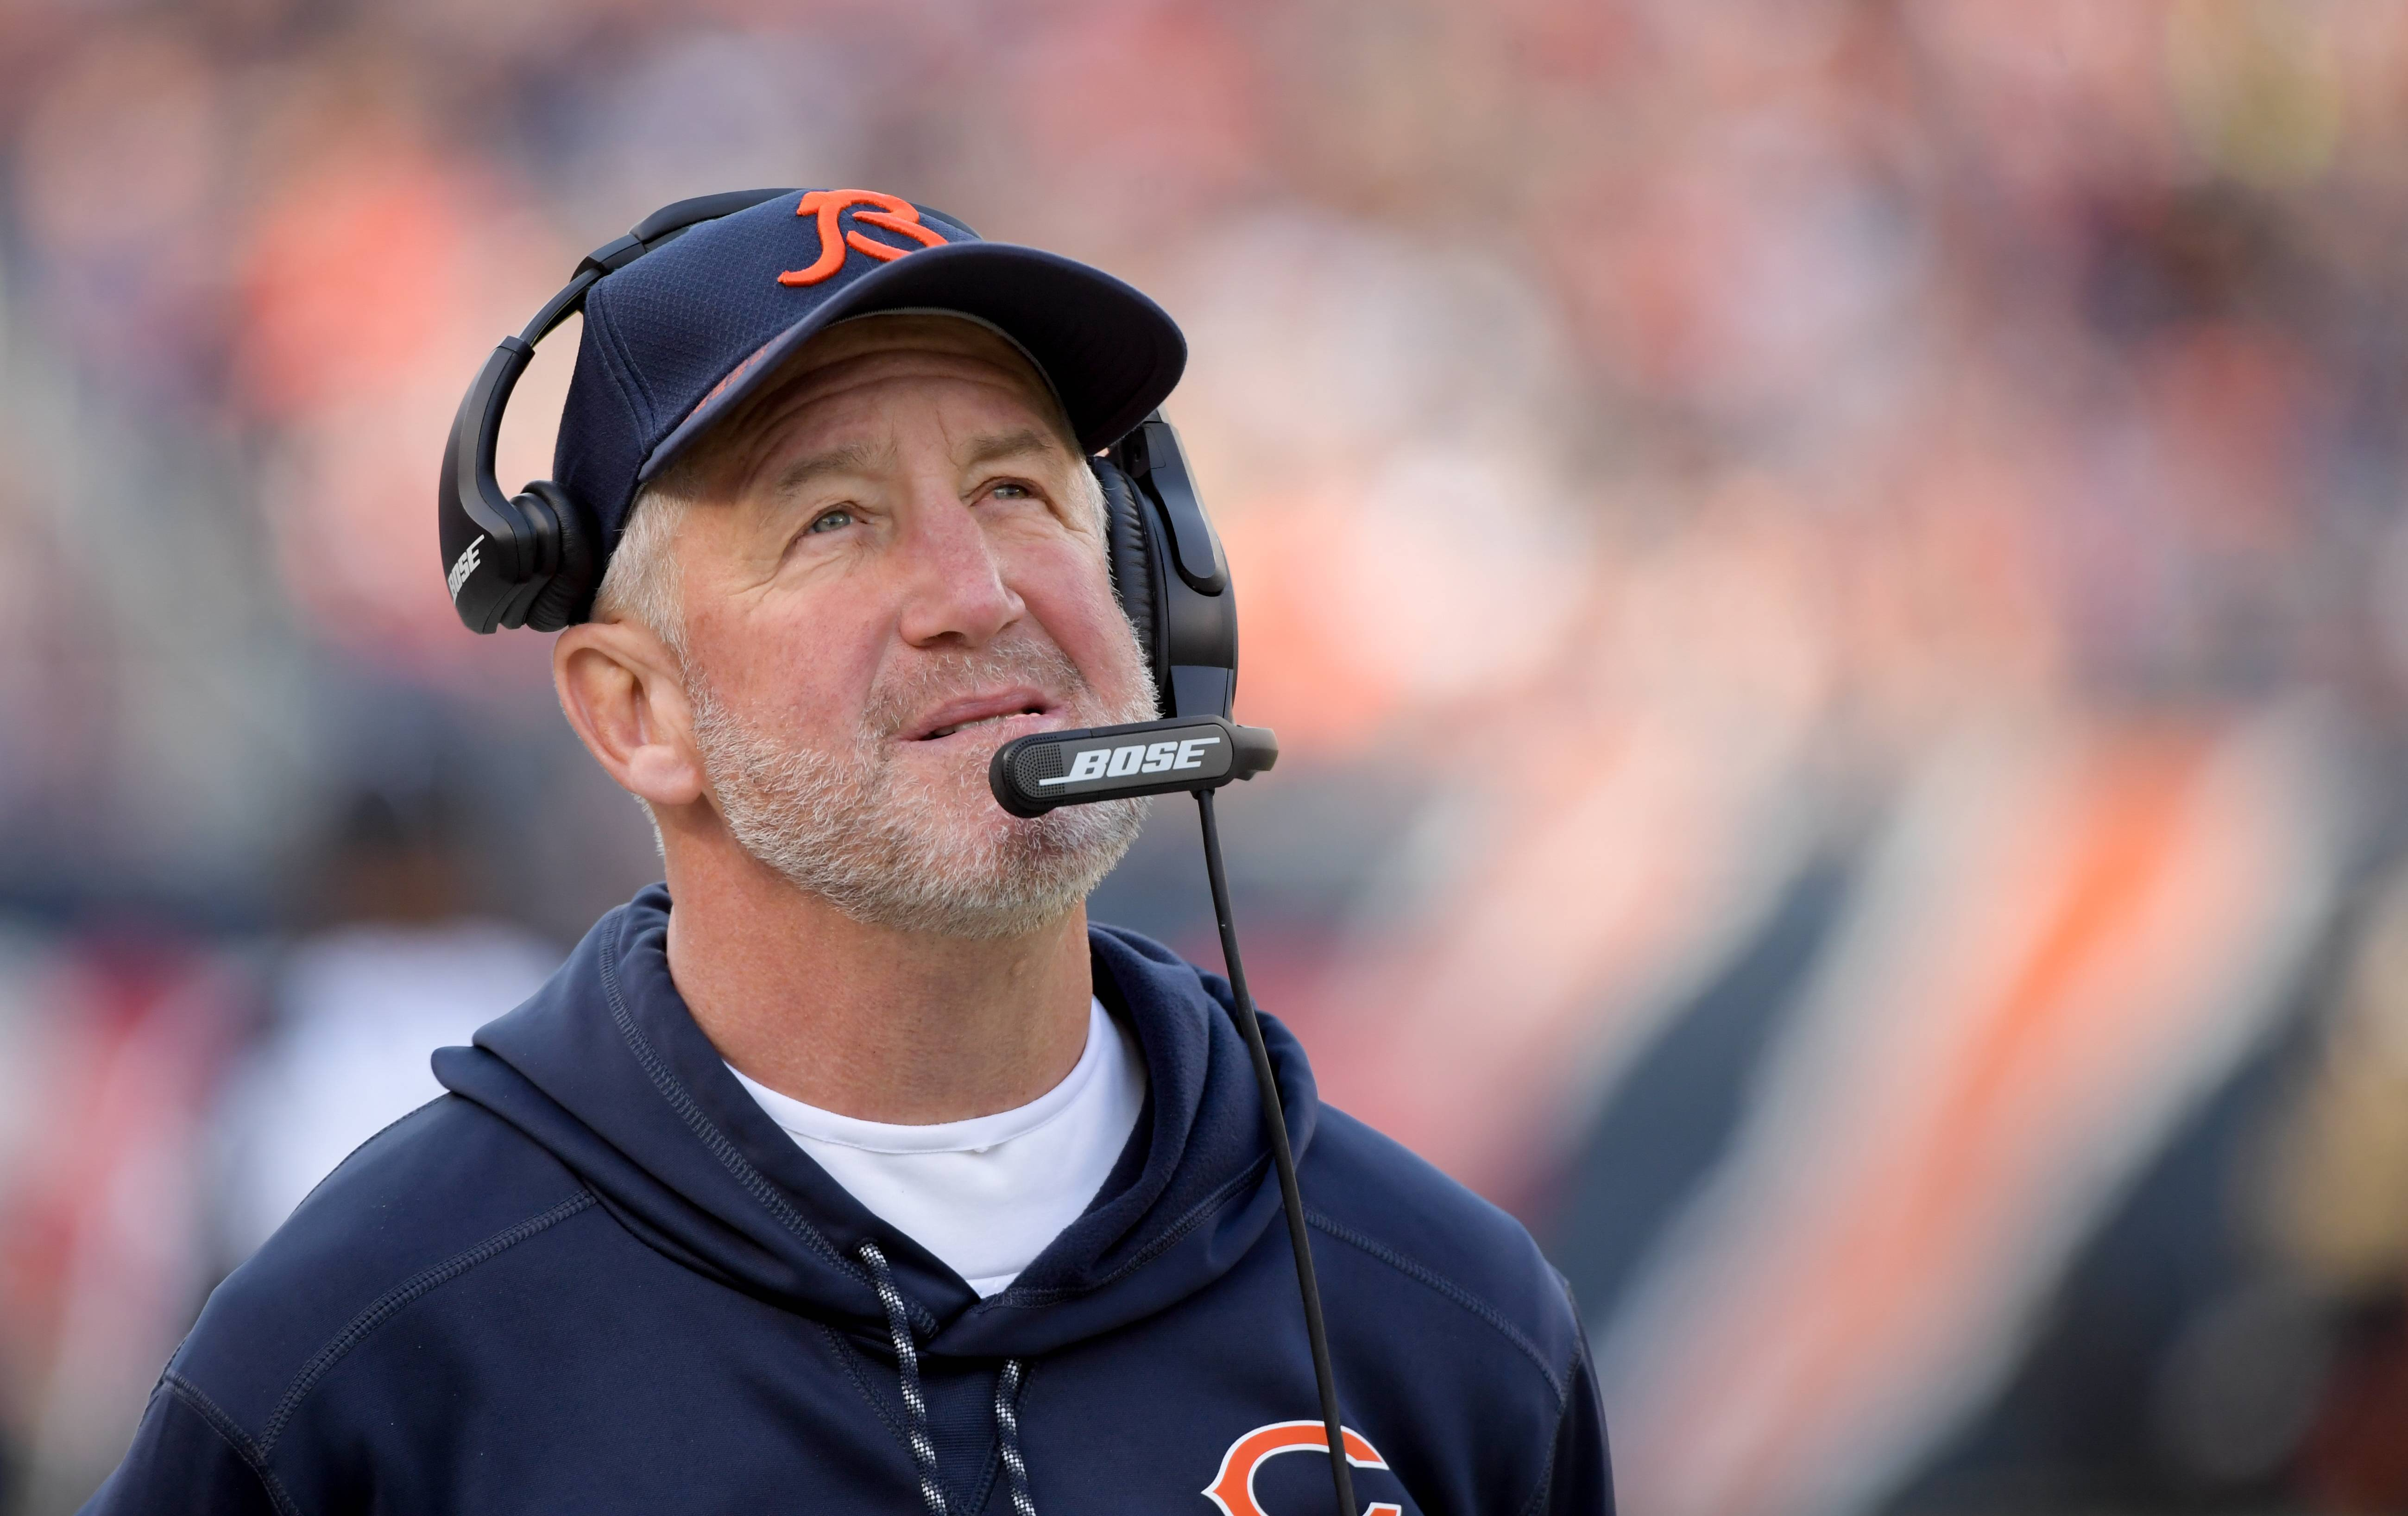 Fox on his Bears' future: 'I haven't heard anything one way or the other'